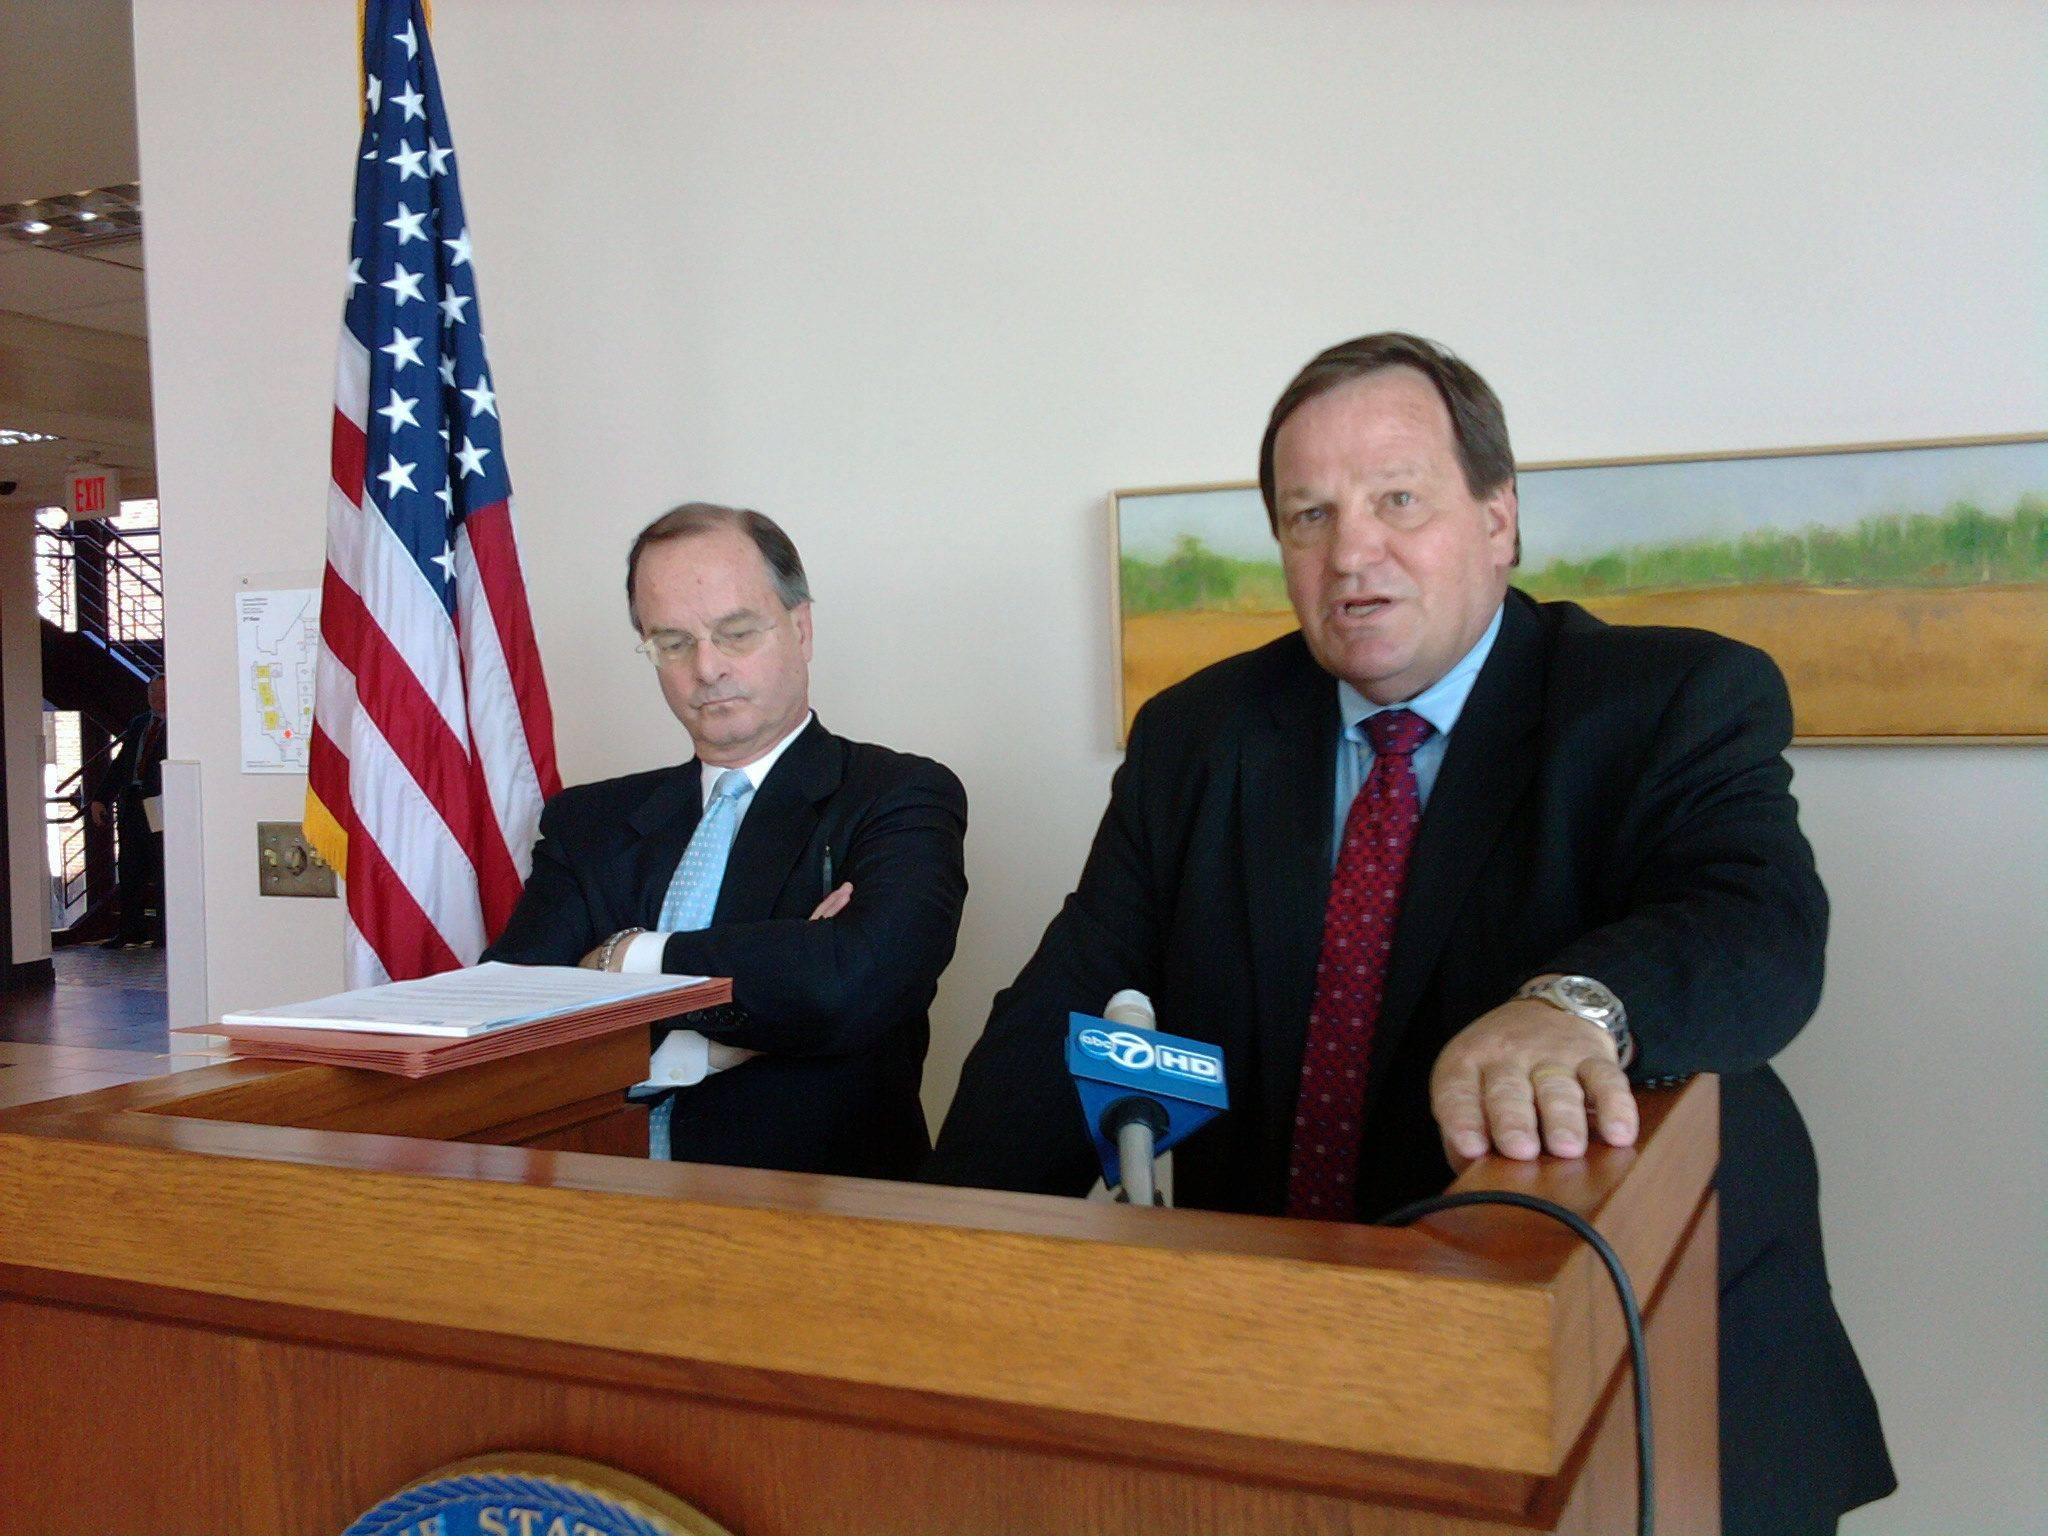 Special Prosecutors Thomas McQueen, left, and Henry Tonigan announce new misconduct charges against McHenry County State's Attorney Louis Bianchi in Woodstock today. Bianchi and others in his office are accused of using their positions of power for lighter or reduced sentences for relatives and contributors to Bianchi's campaign.